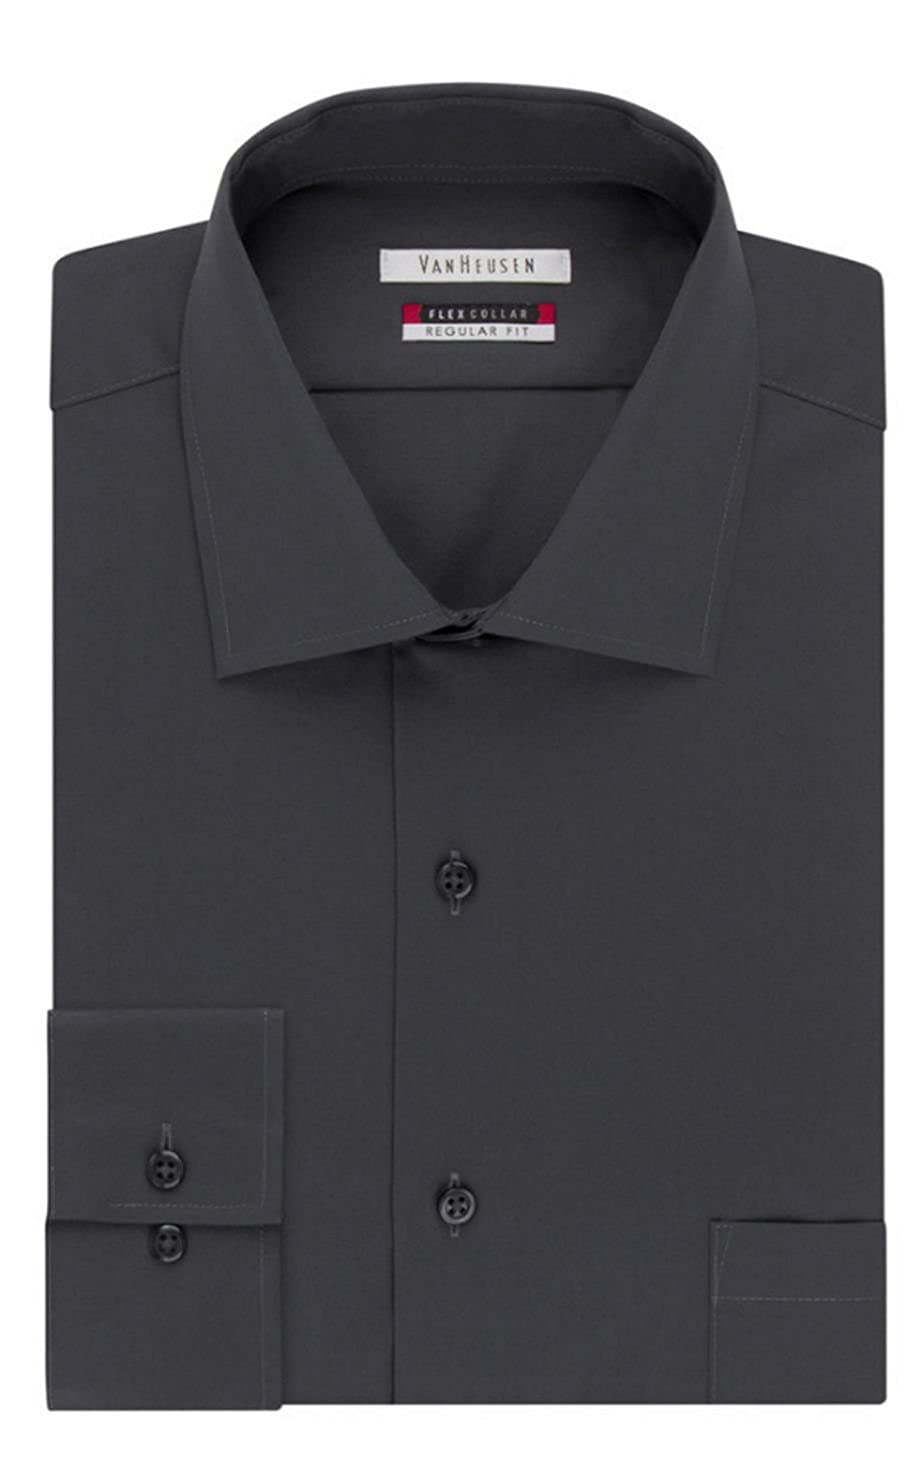 Van Heusen Mens Flex Collar Regualr-Fit Dress Shirt Neck 15 Sleeve 32//33, Charcoal